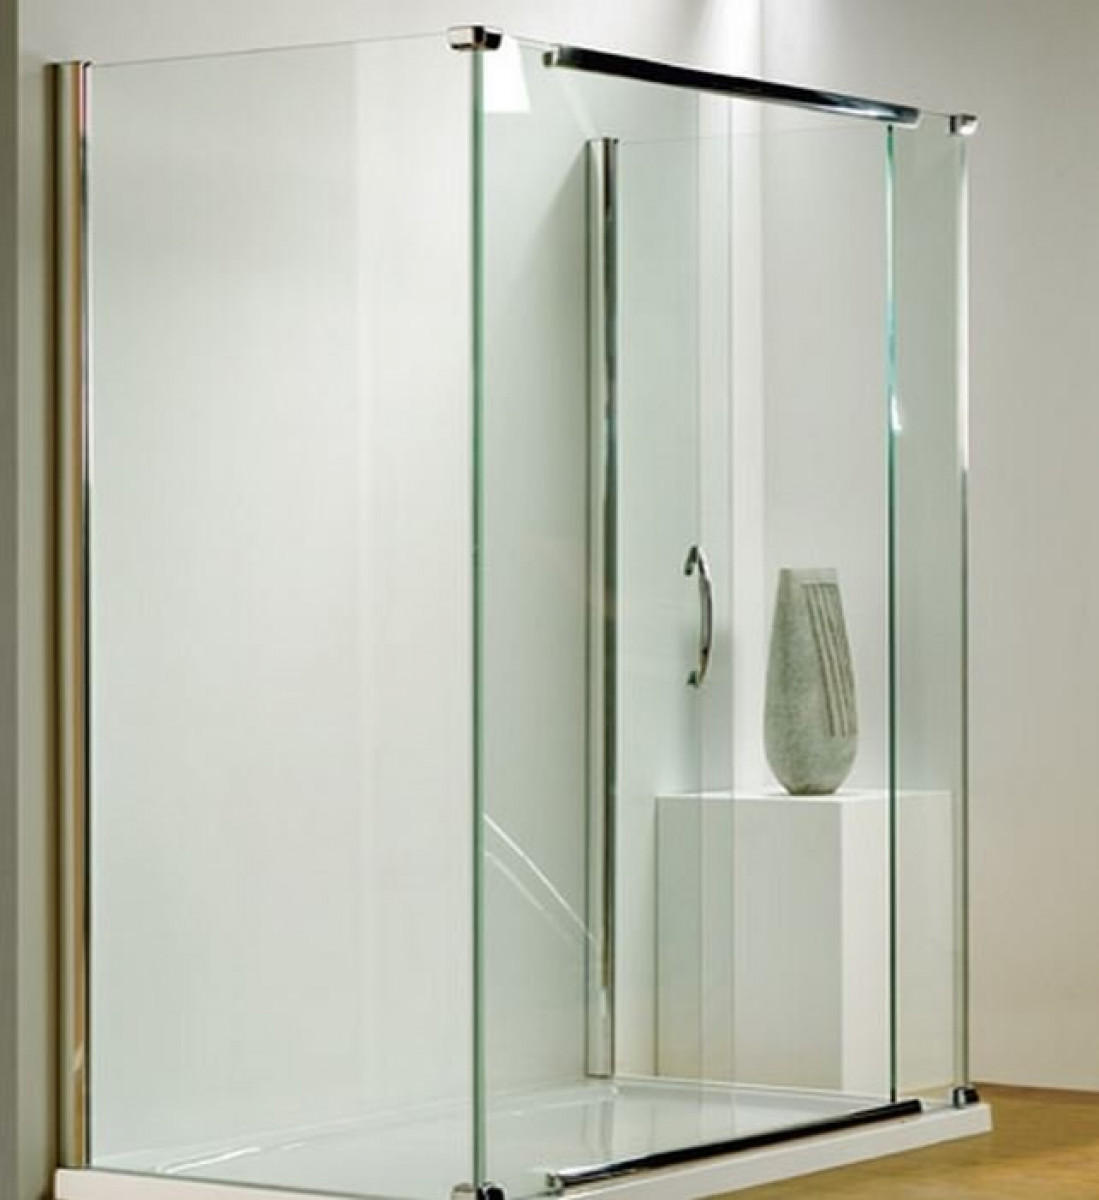 Kudos Infinite 1200mm Sliding Door Enclosure with Side Access 4SDS120S  sc 1 st  Showers To You & Kudos Infinite 1200mm Sliding Door Enclosure with Side Access 4SDS120S -